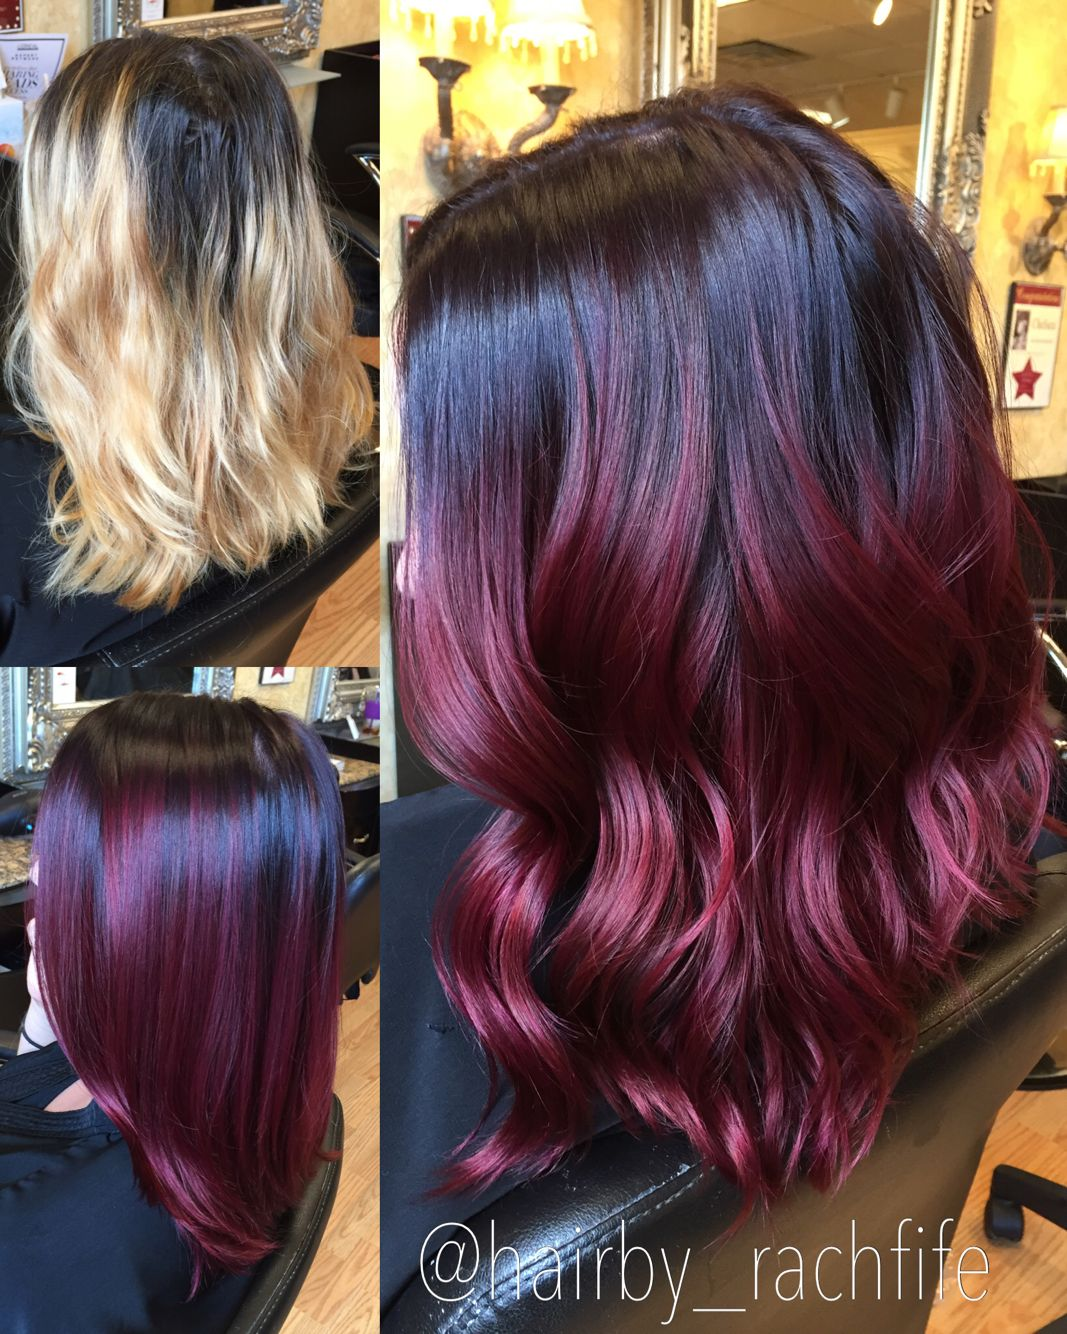 Red mermaid hair transformation red violet color created using